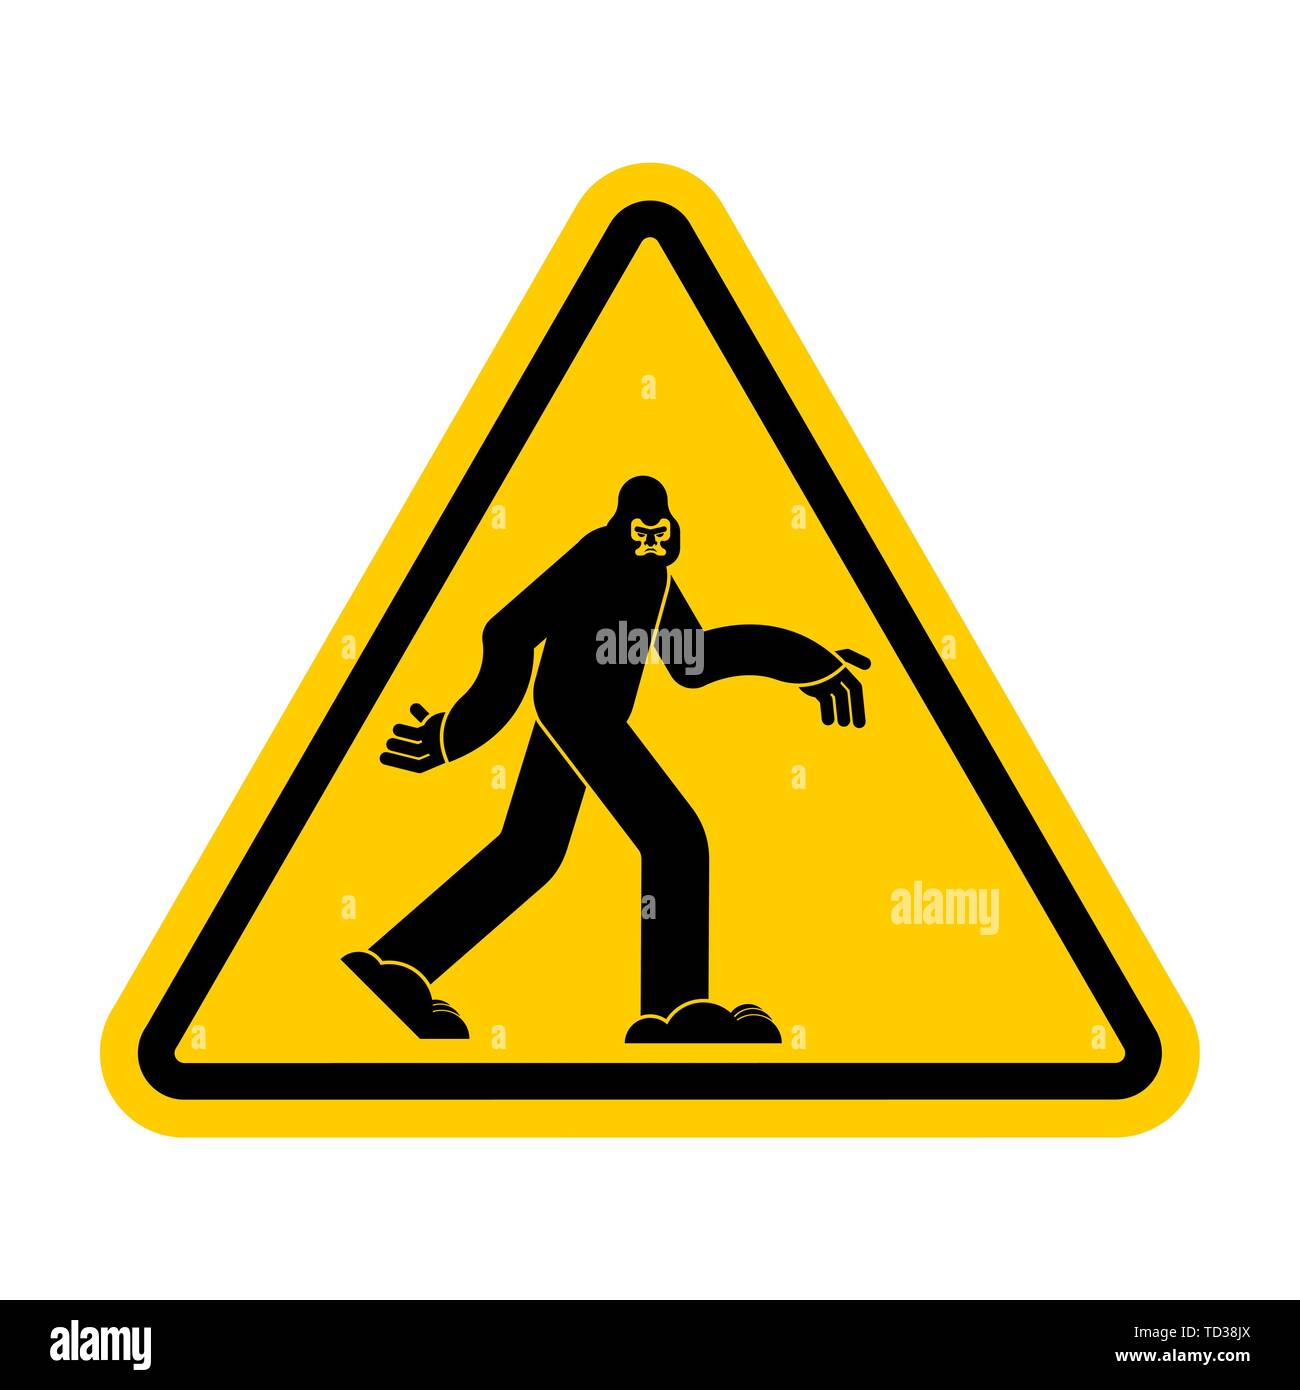 Attention Bigfoot. Caution Yeti. Yellow triangle road sign - Stock Image